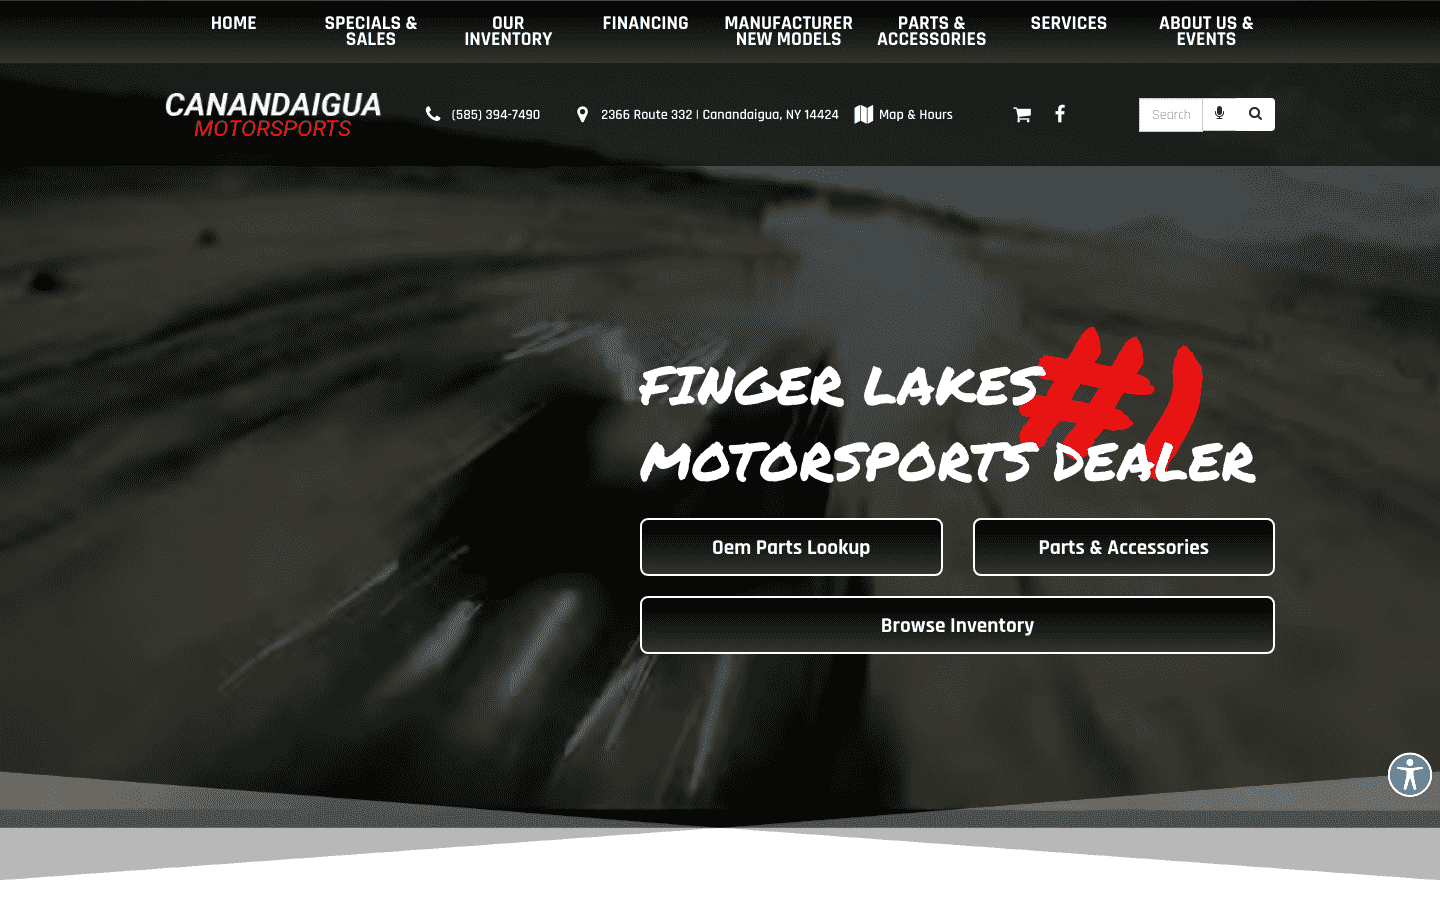 Canandaigua Motorsports reviews and complaints